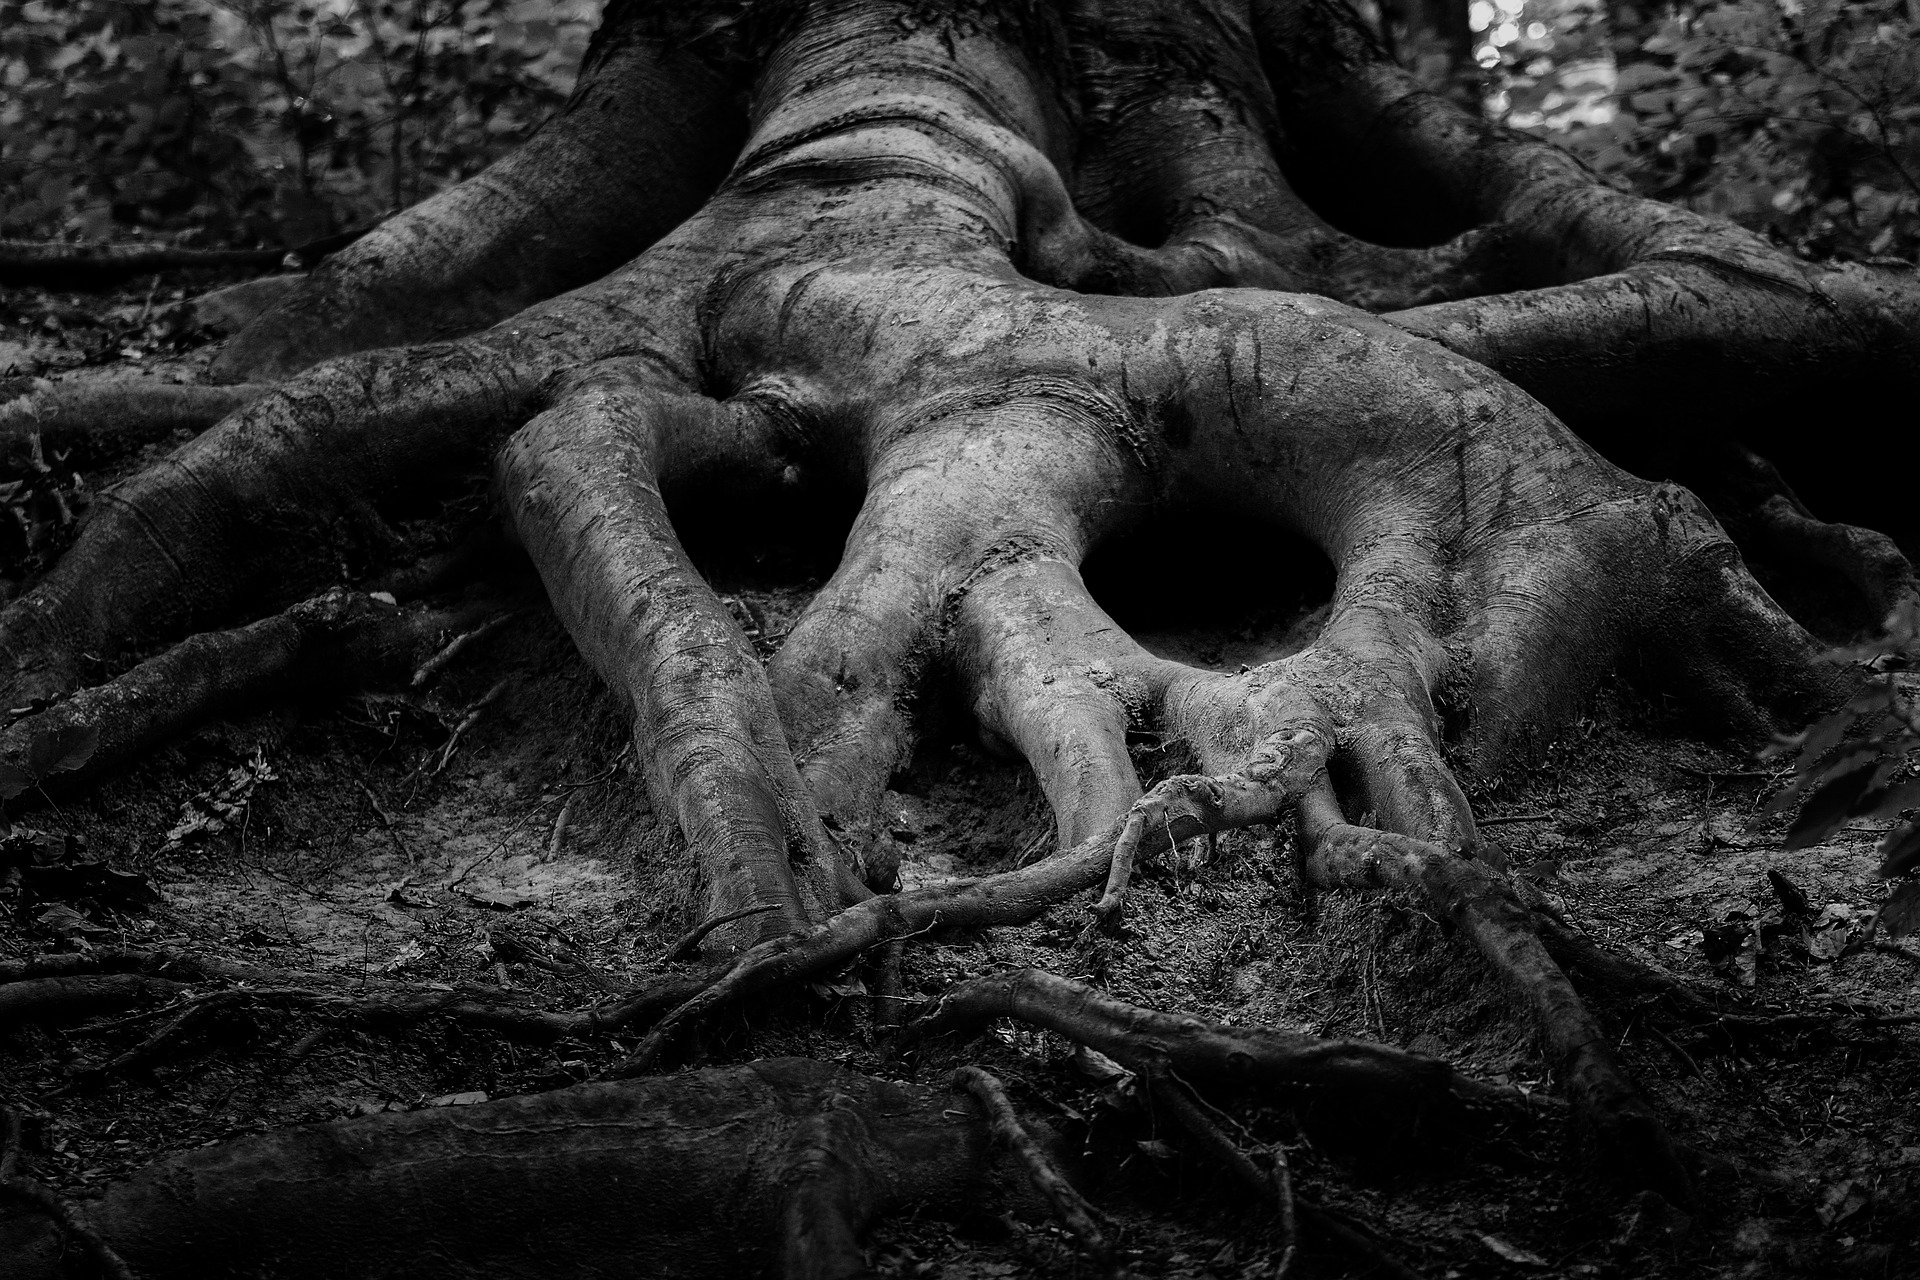 Knelt at the Bone-Mother's Altar: The Grotesque Beauty of a Witch's Becoming